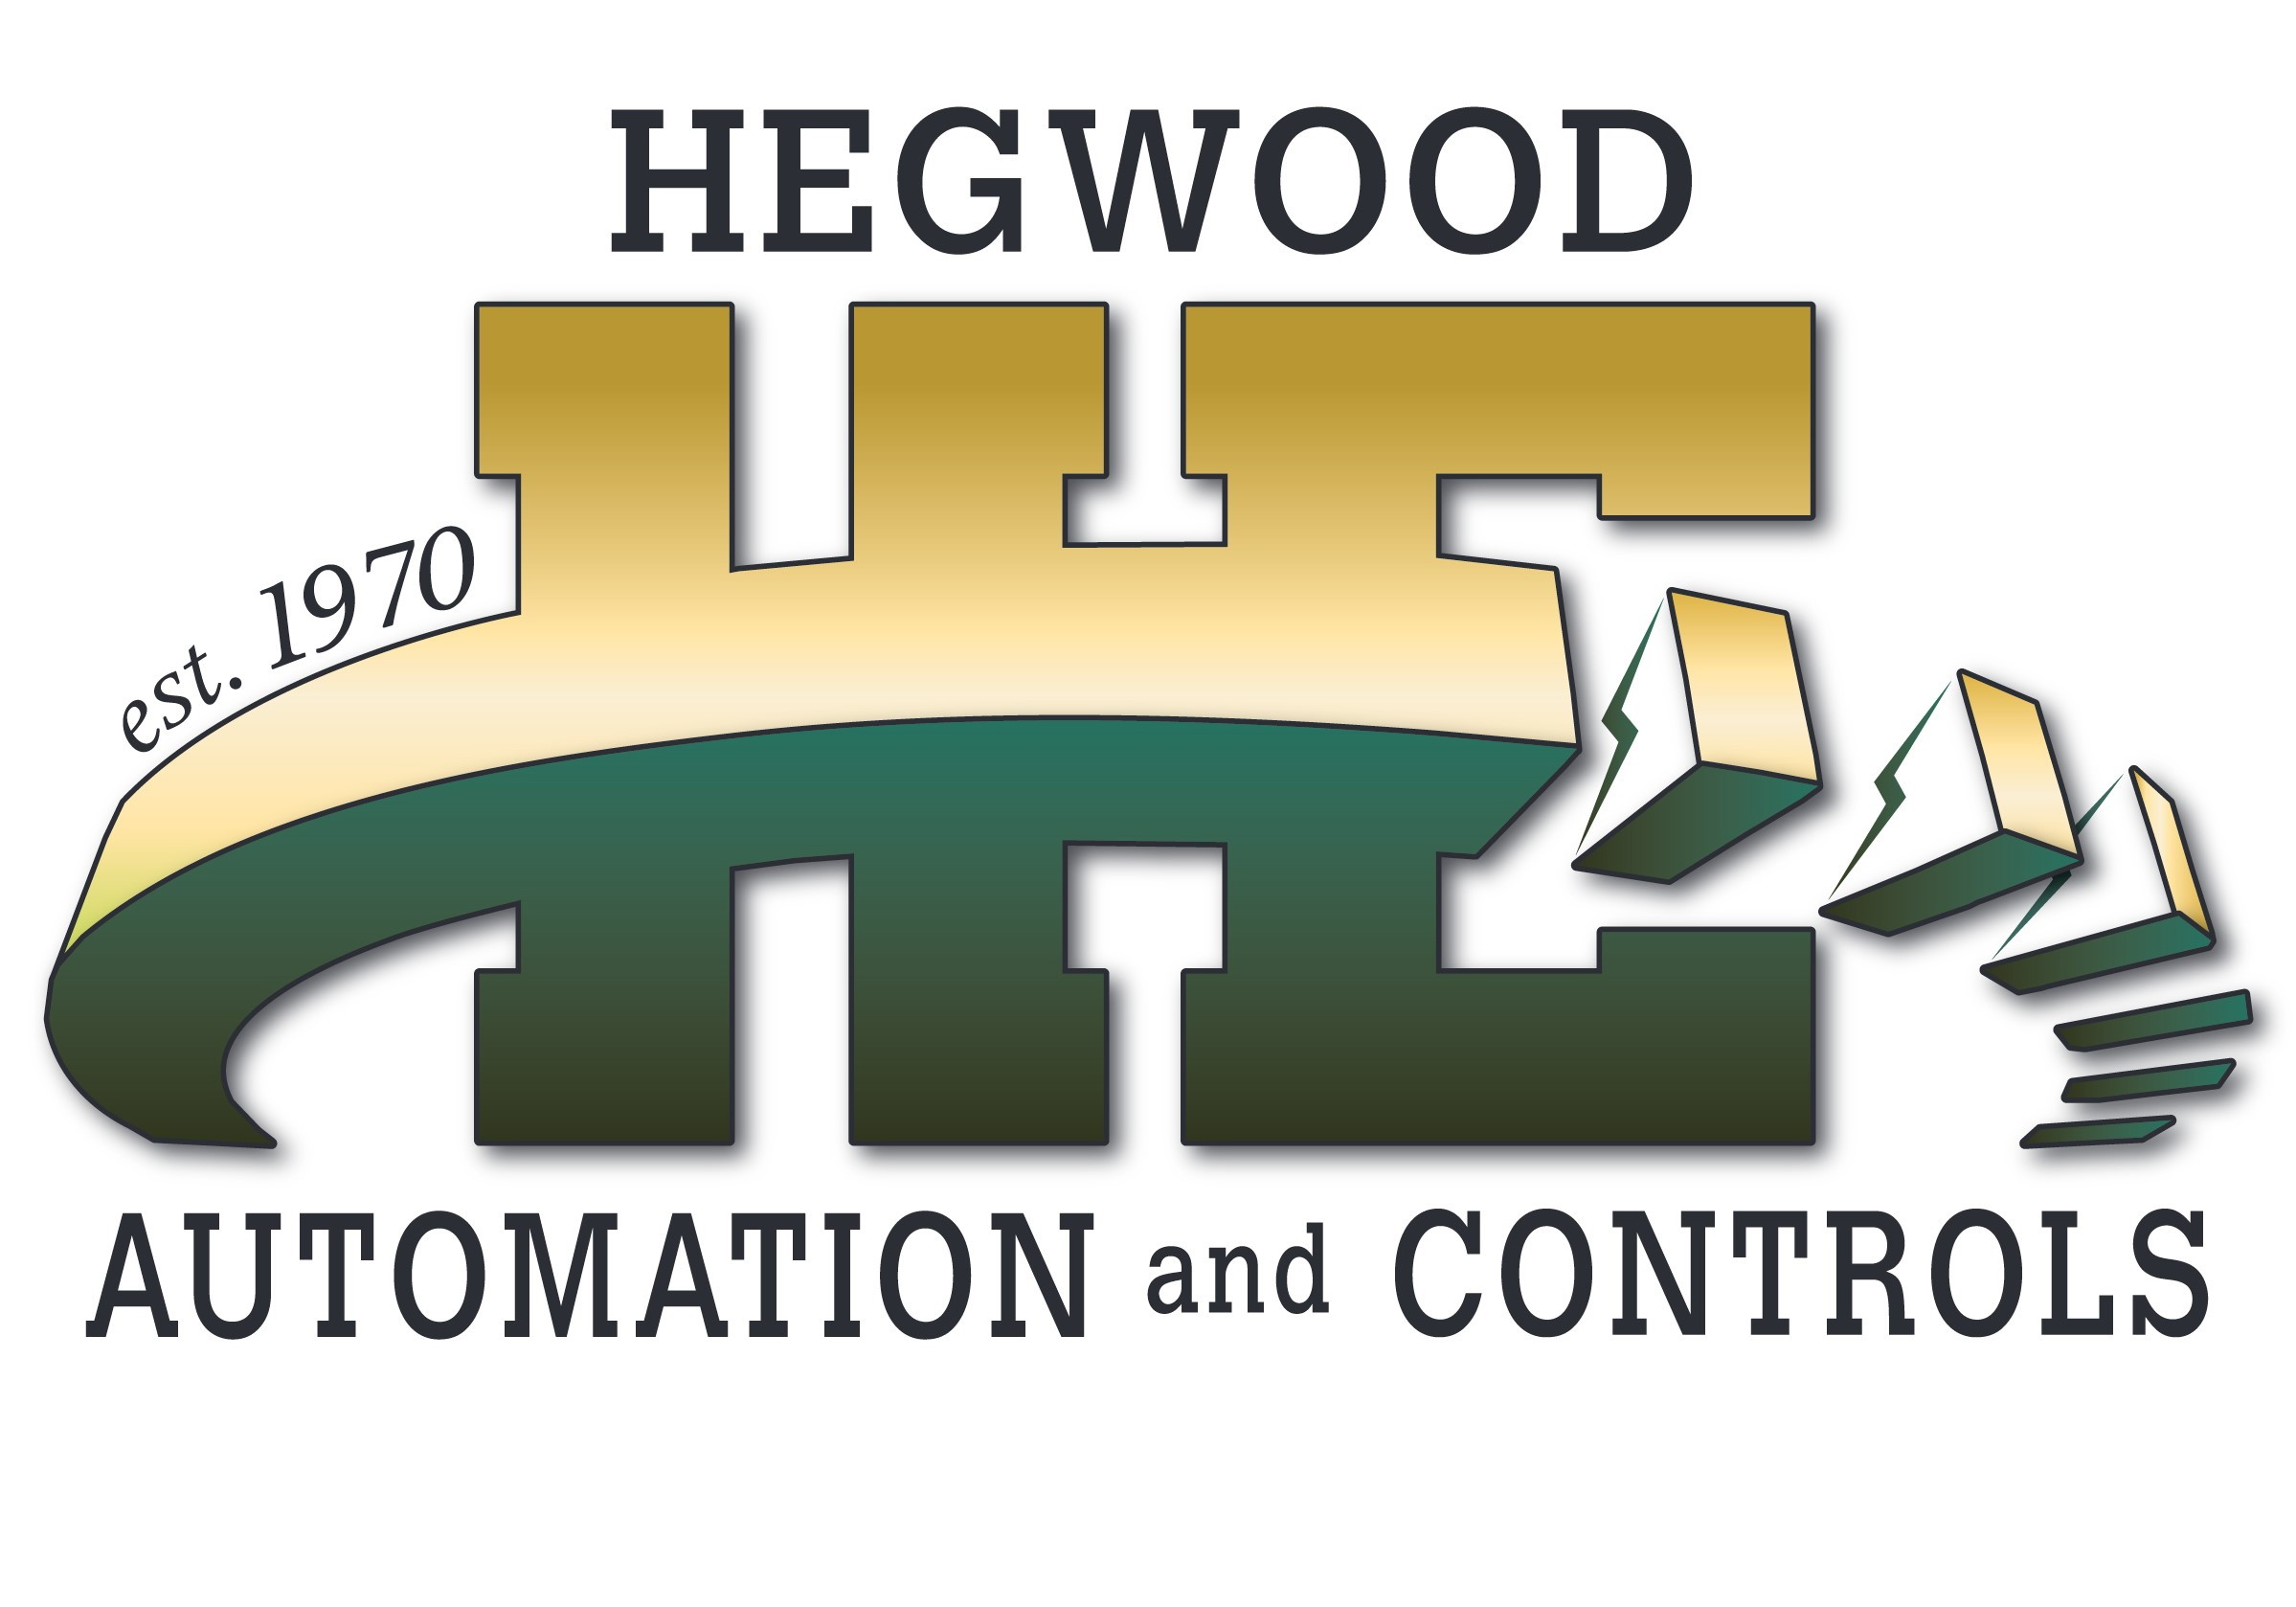 Hegwood Electric in Doraville, GA. Industrial automation & controls.